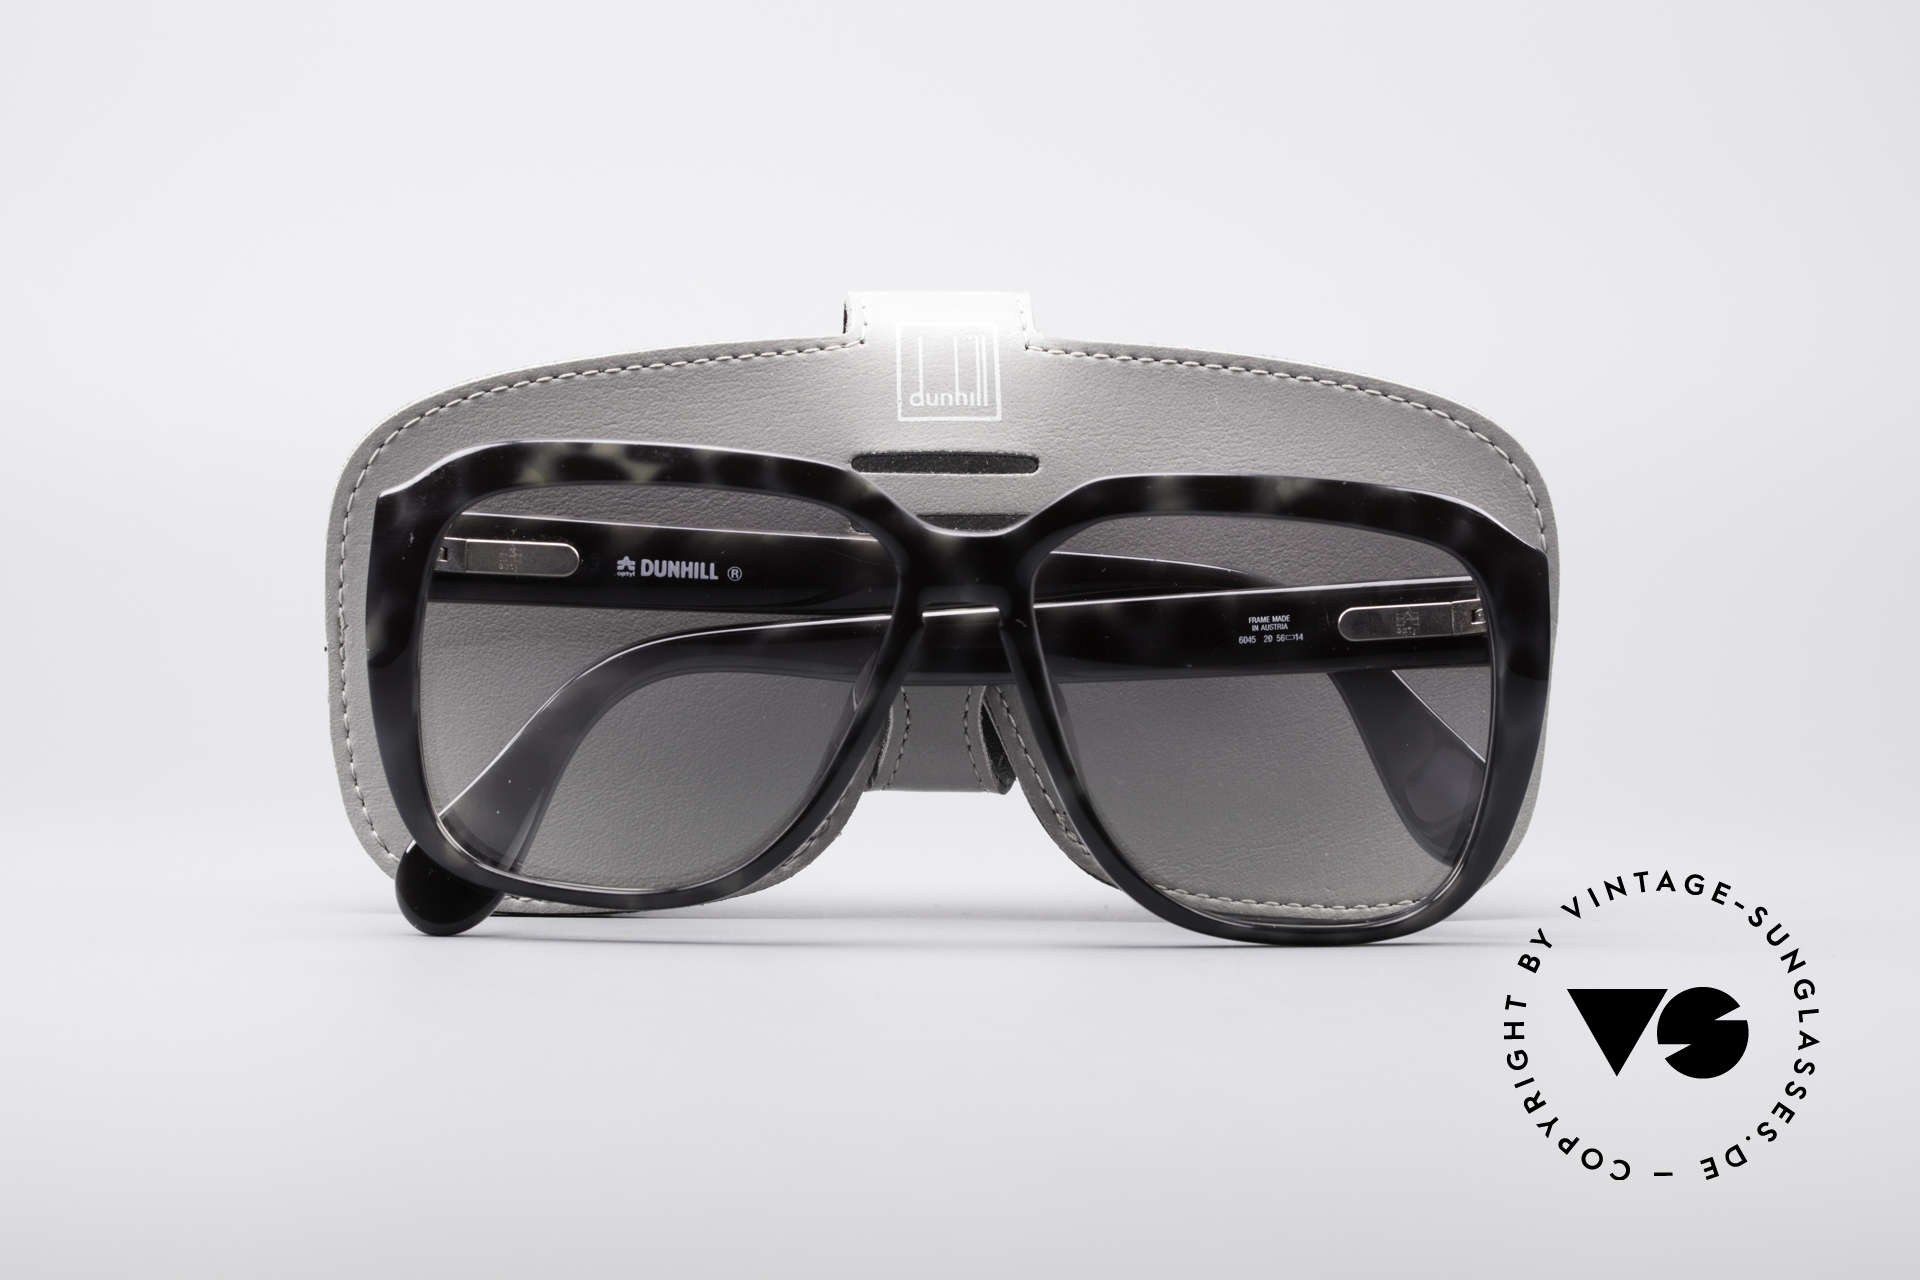 Dunhill 6045 80's Optyl Sunglasses, unworn (like all our rare vintage quality sunglasses), Made for Men